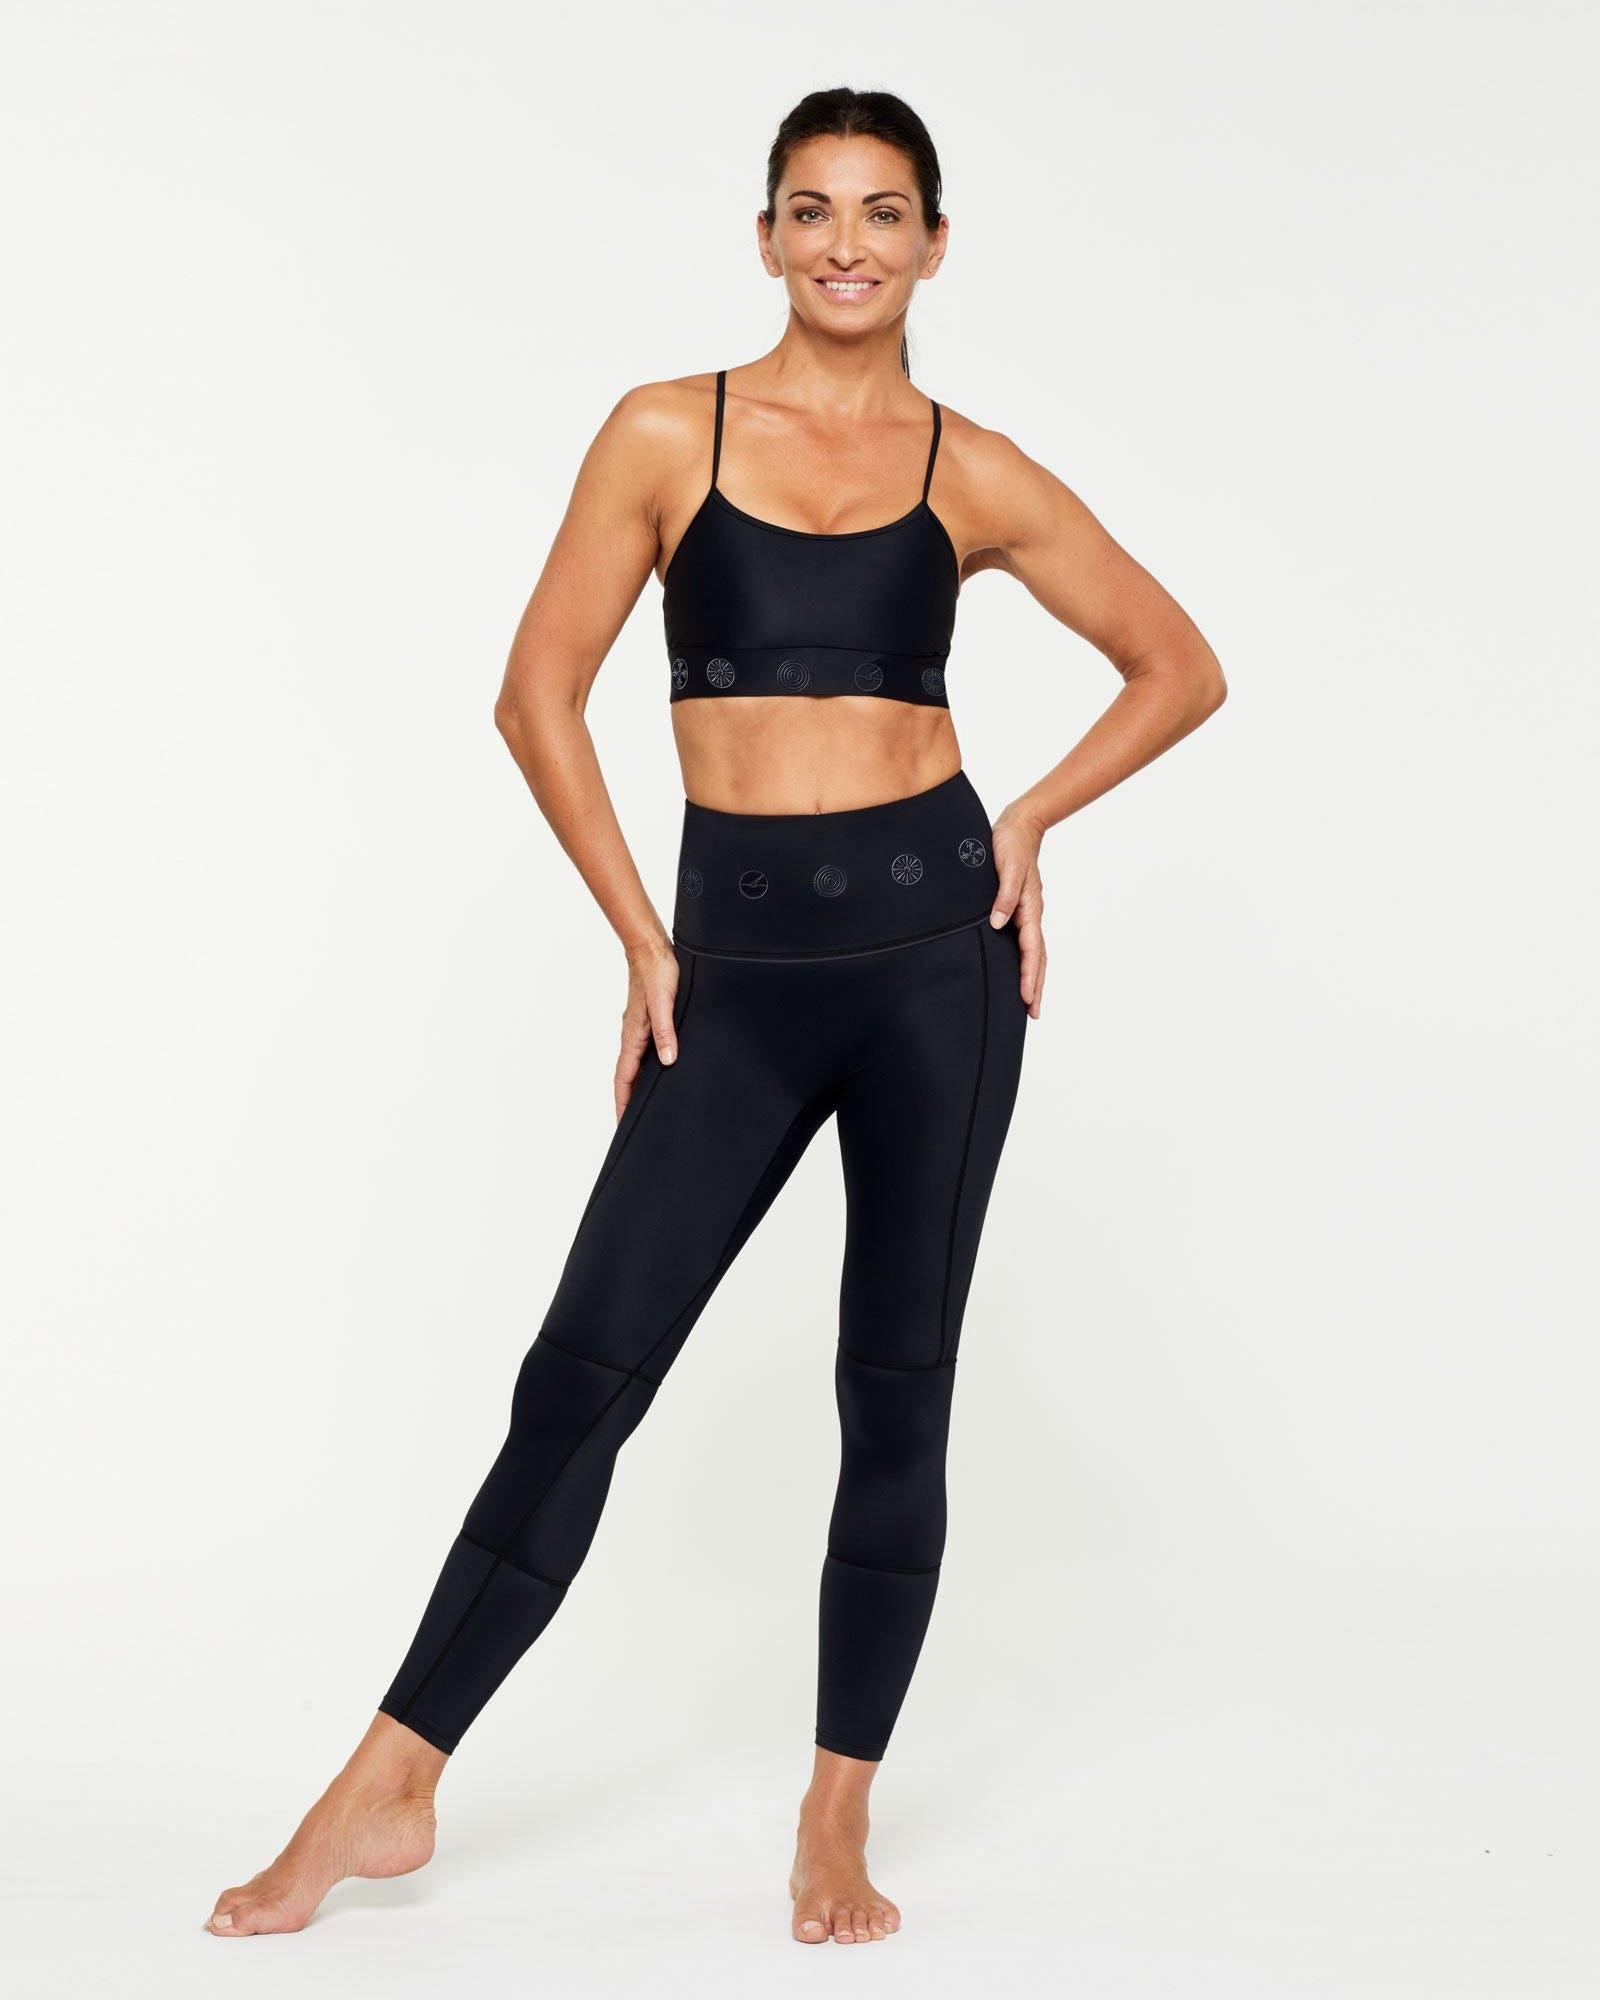 Companion Infraspinatus Bra top worn with GRACILIS 7/8 LENGTH LEGGING BLACK WITH BLACK SYMBOLS, FRONT VIEW